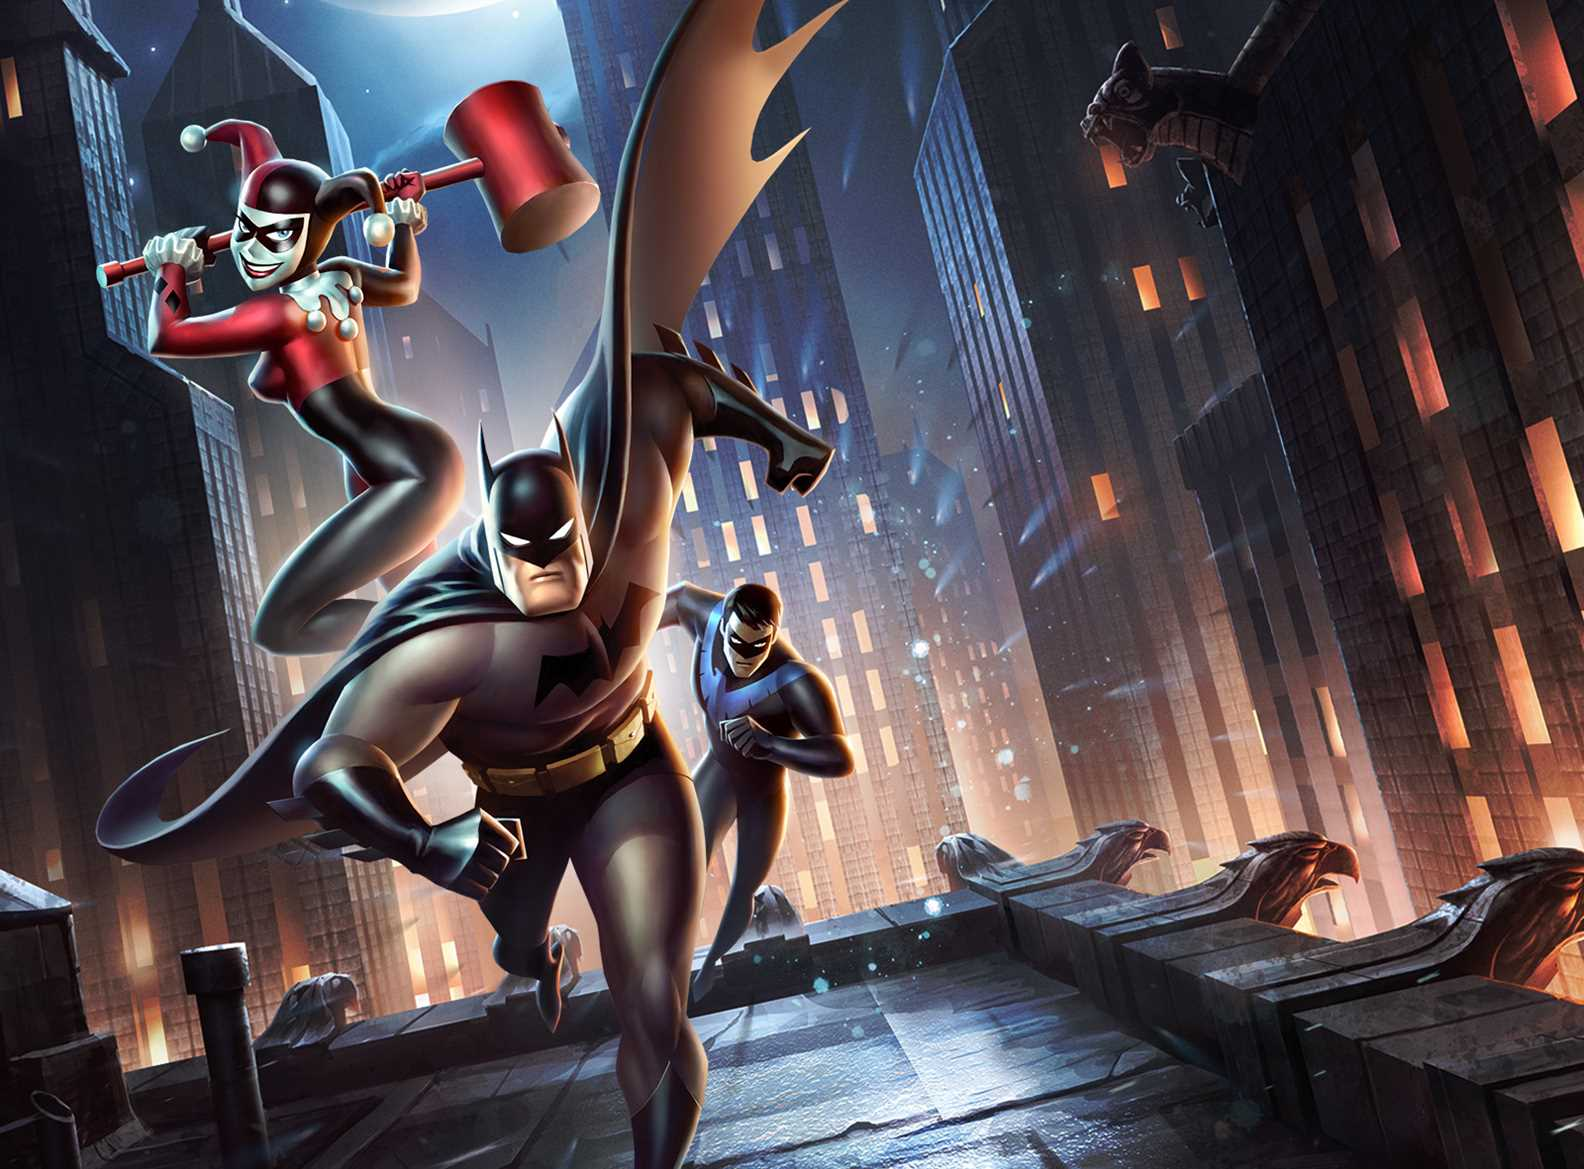 Batman vs Harley Quinn